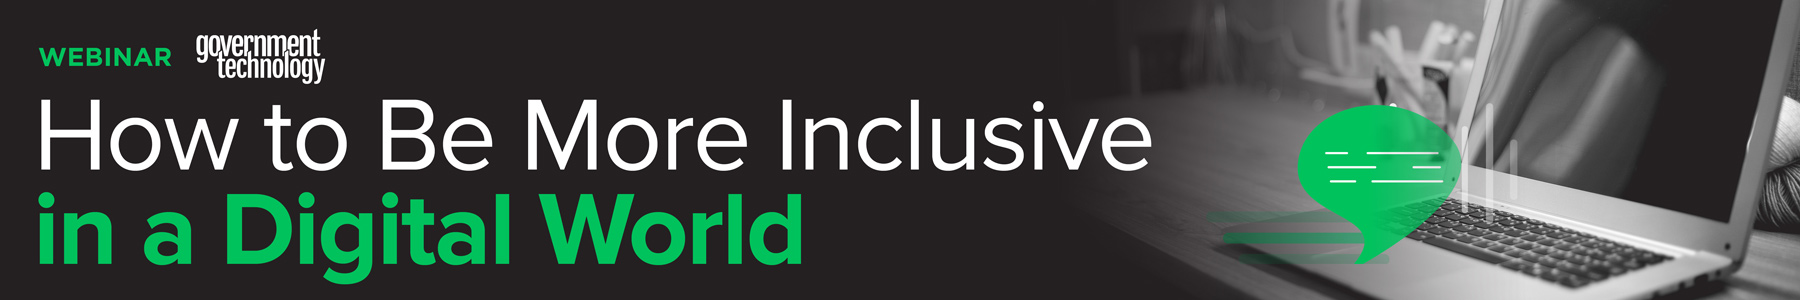 How to Be More Inclusive in a Digital World